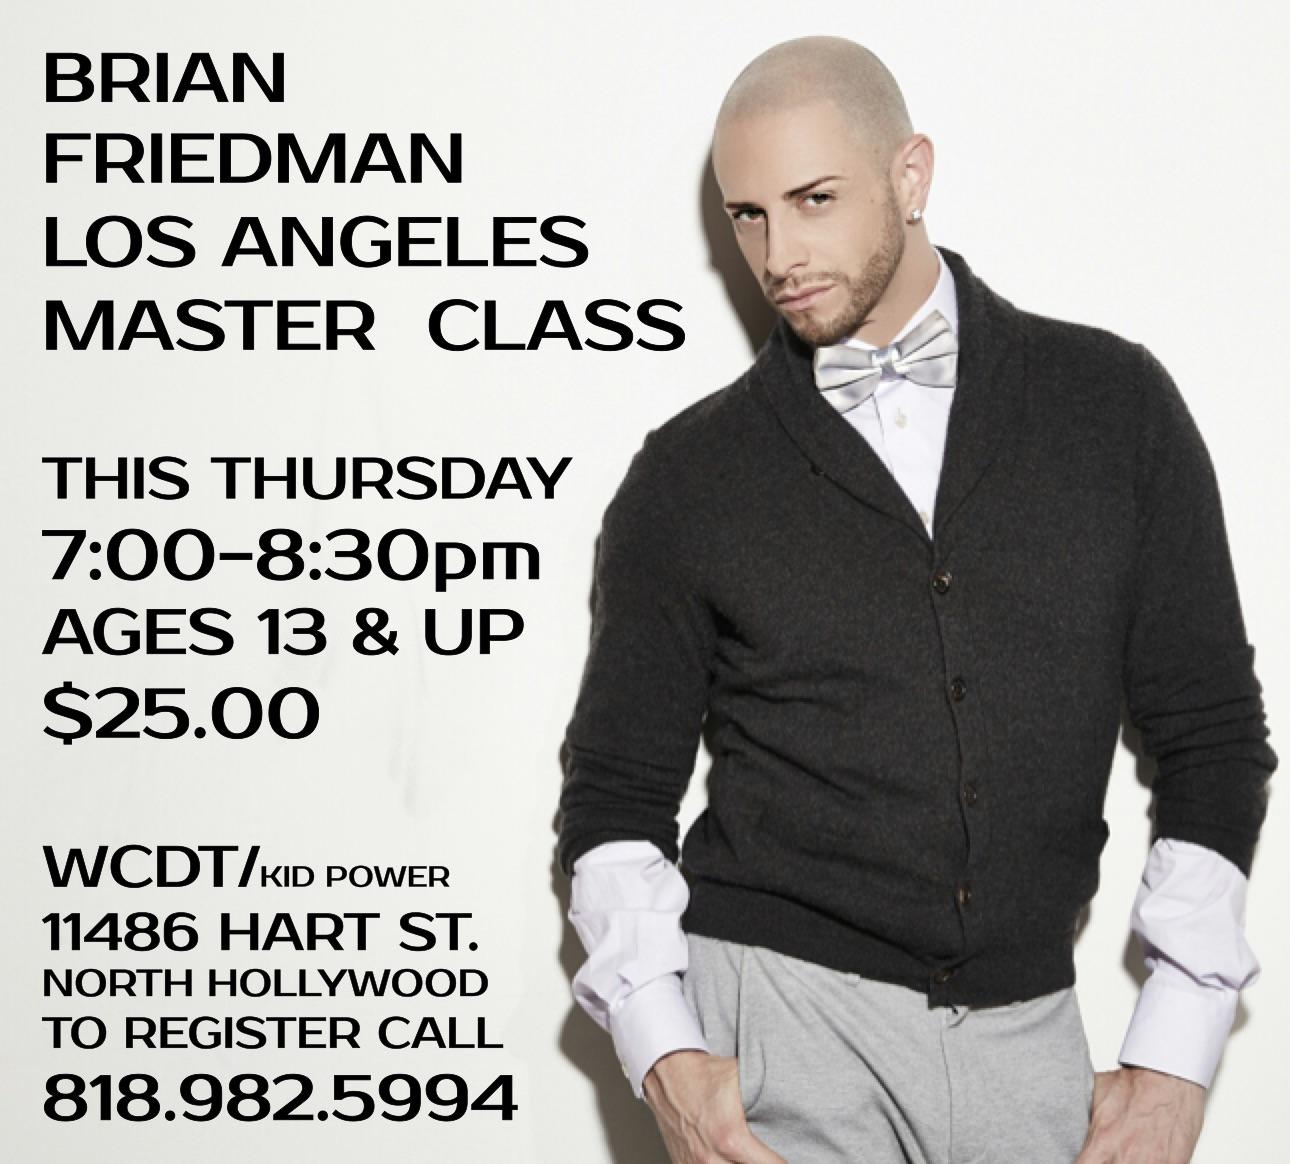 THIS JUST IN... I'm TEACHING in LA THIS THURSDAY THE 9TH @ WestCoastDanceTheater @ 7PM! Check this flyer 4 details! http://t.co/RlDEQ6cFDA